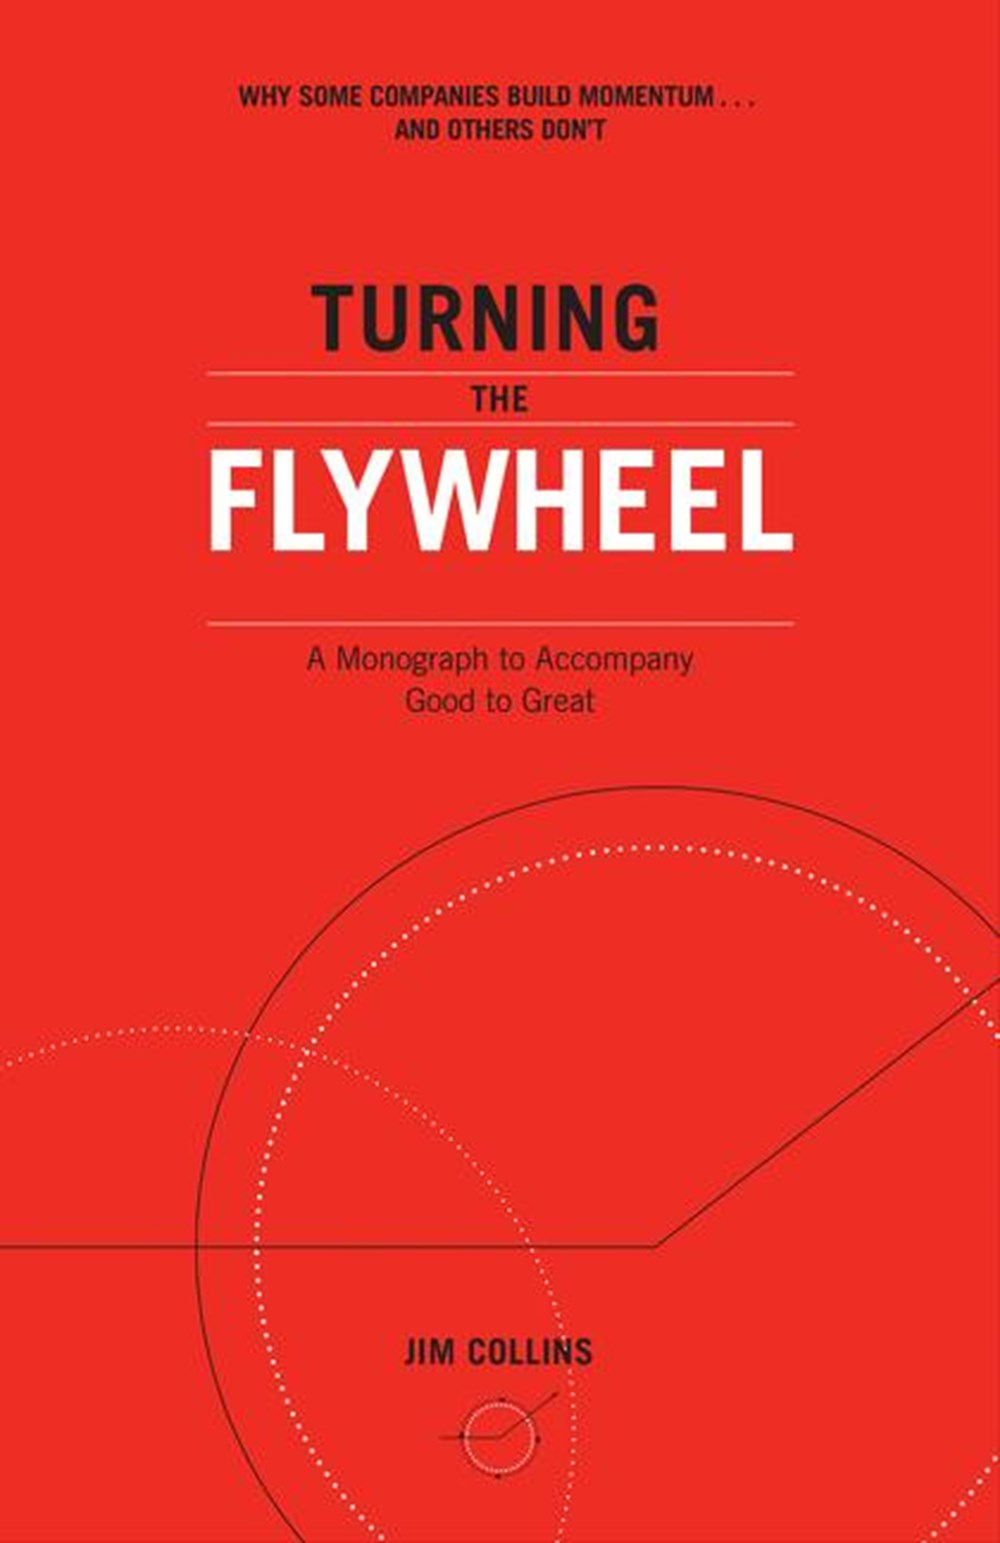 Turning the Flywheel A Monograph to Accompany Good to Great